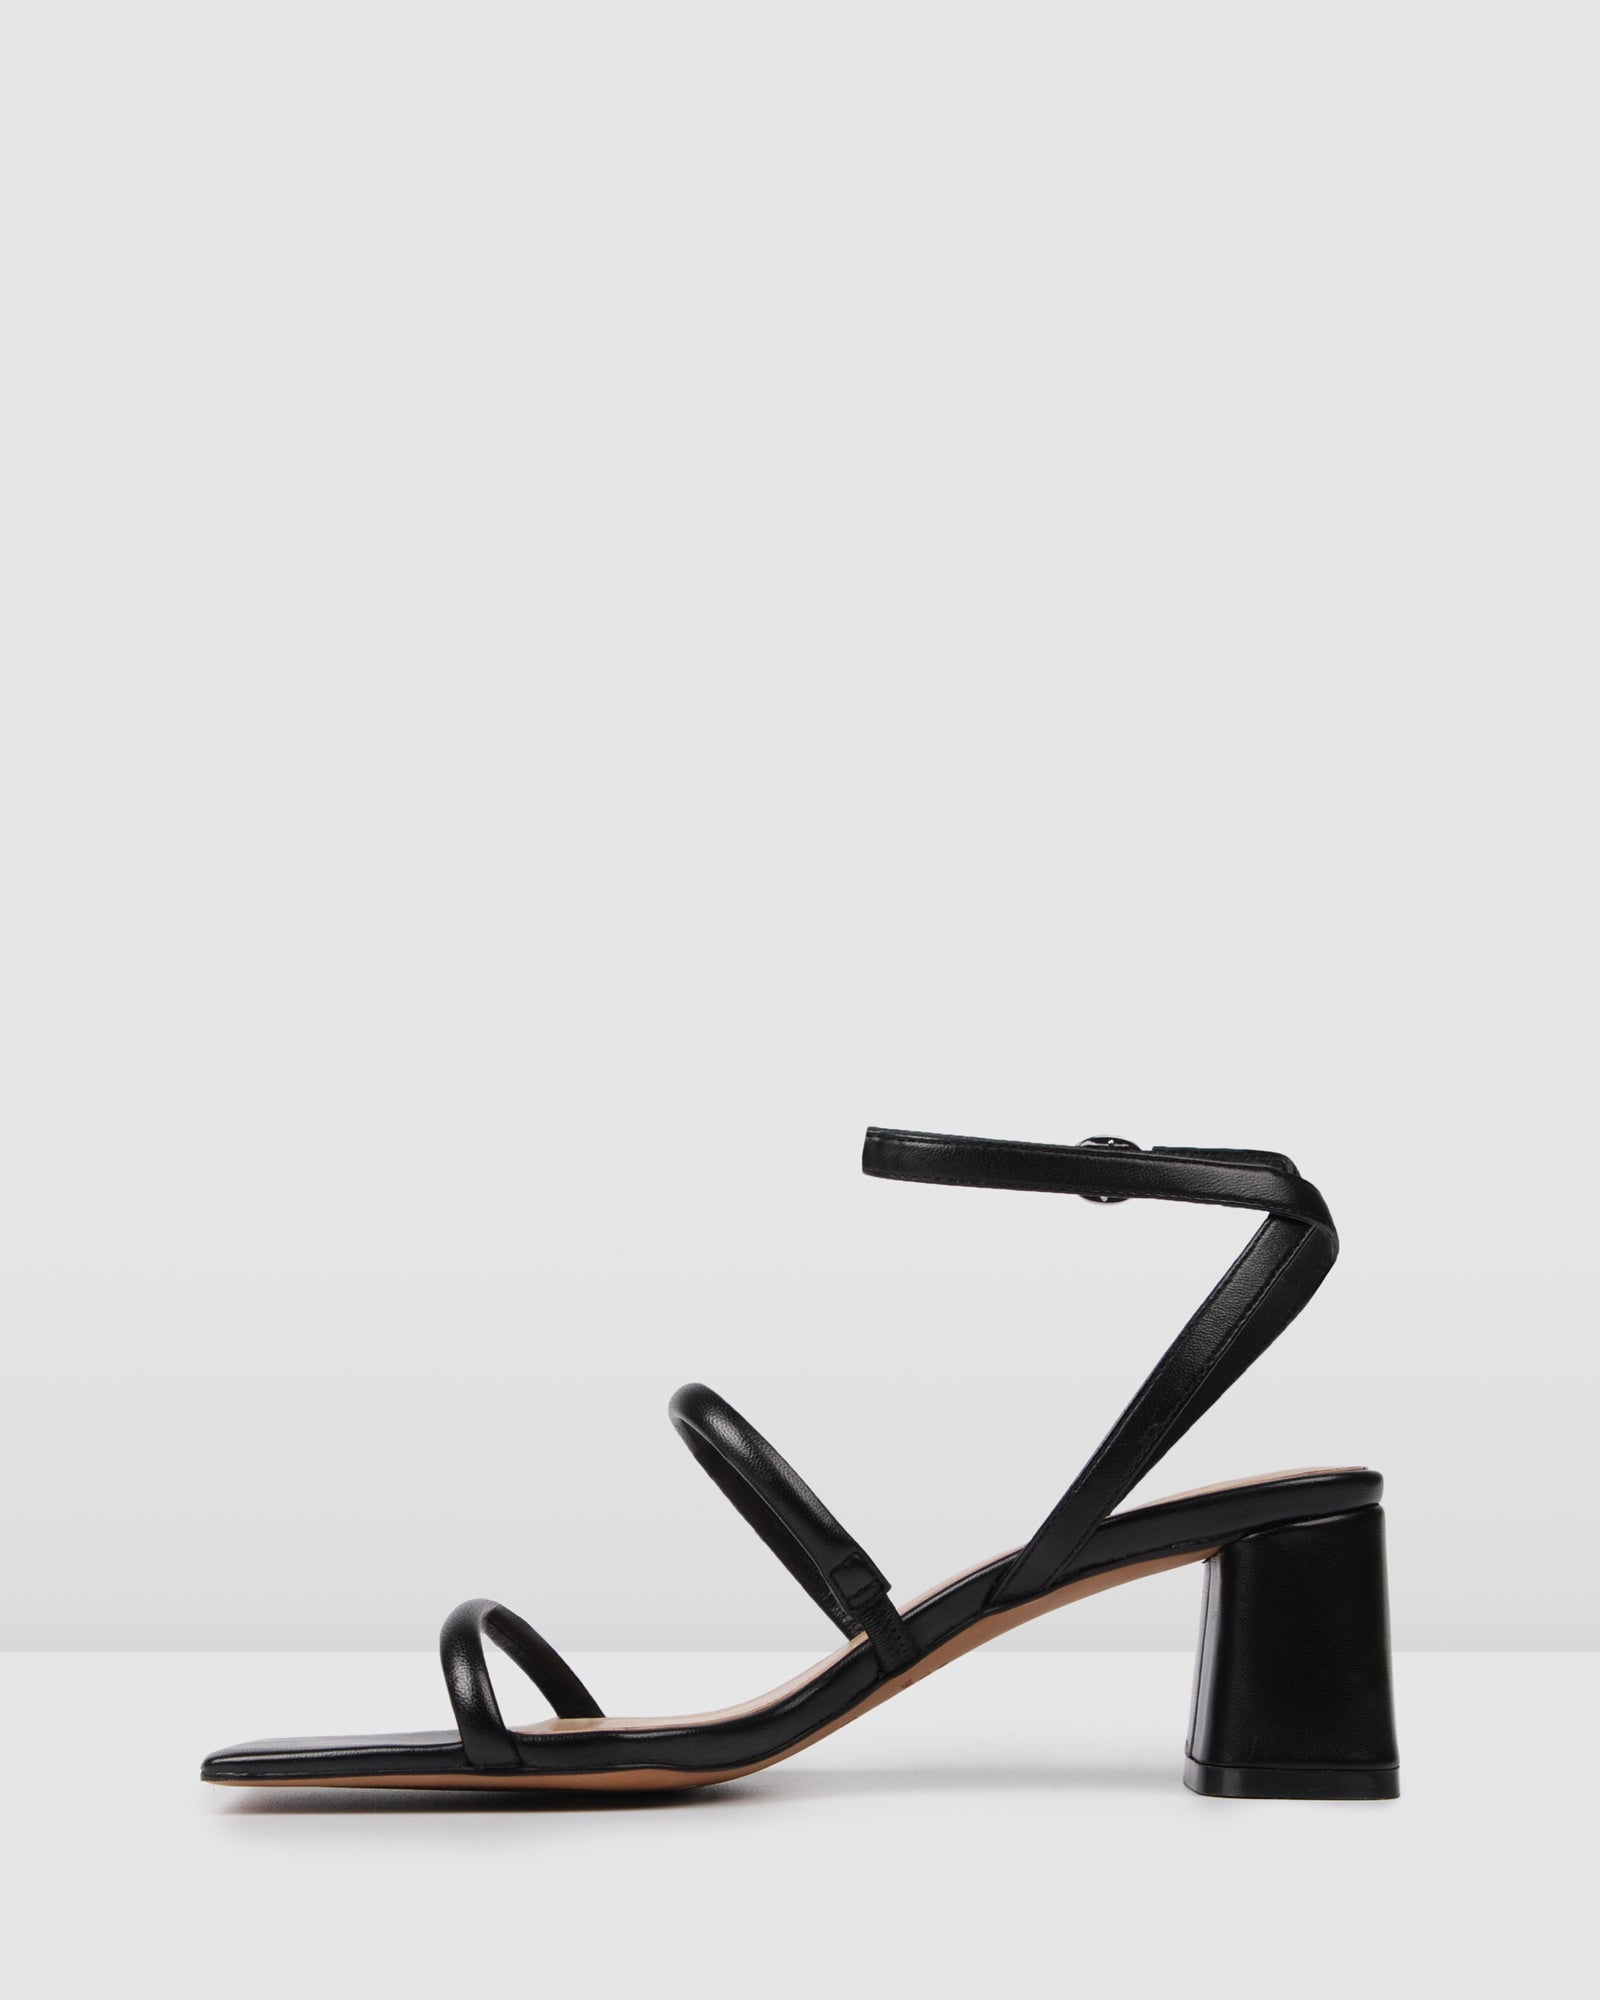 BELLO MID HEEL SANDALS BLACK LEATHER